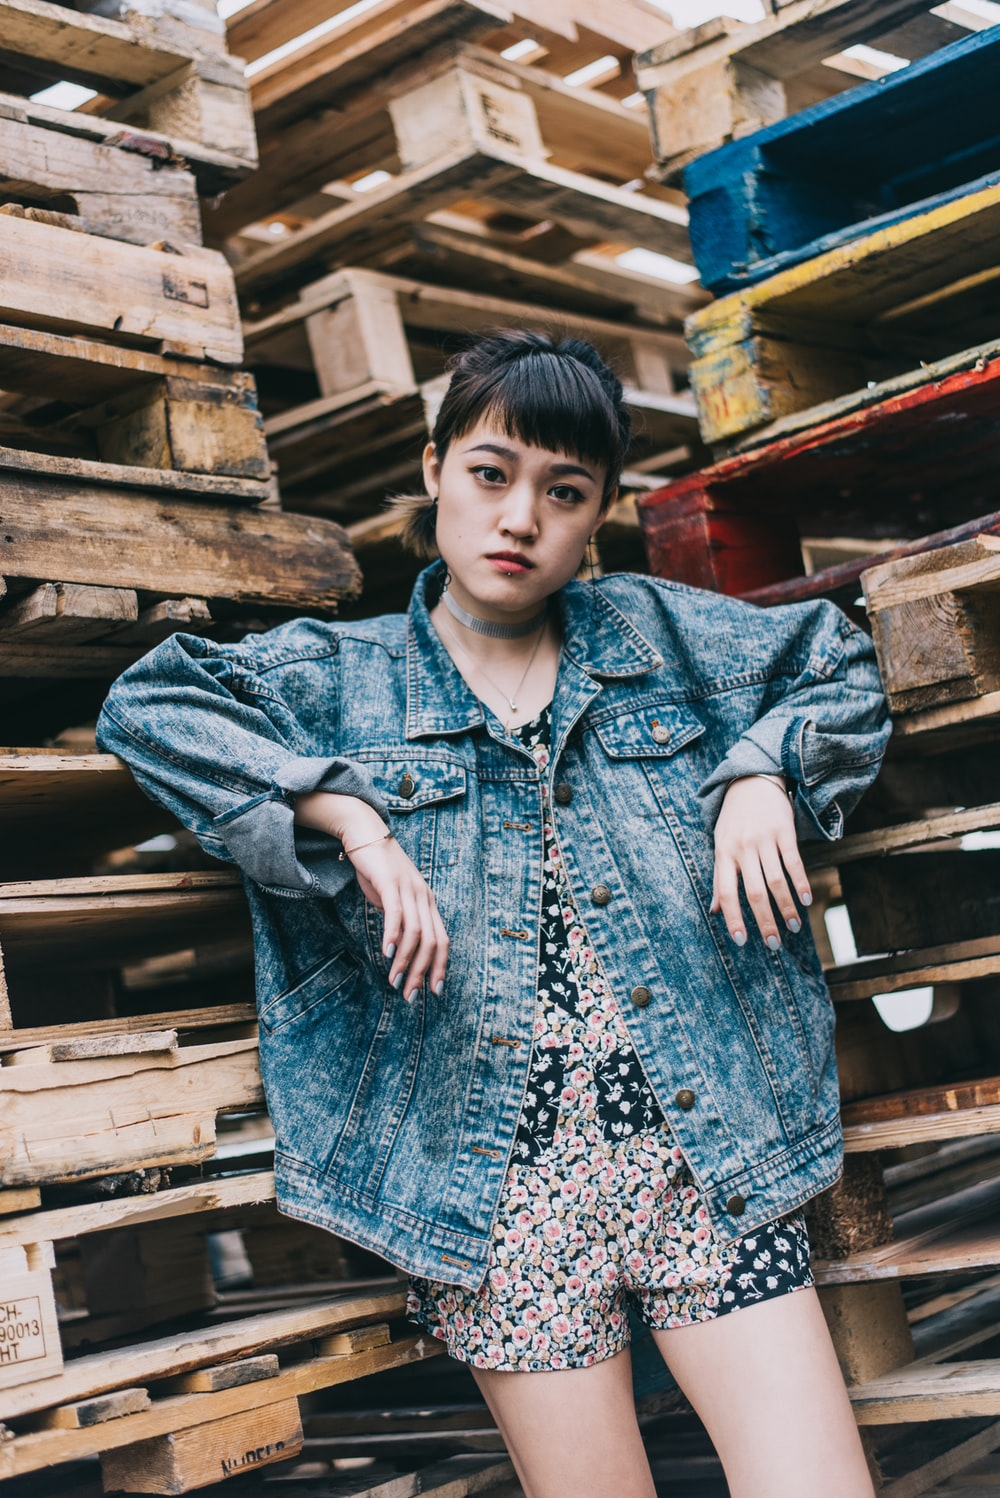 woman in blue denim jacket standing near brown wooden pallet